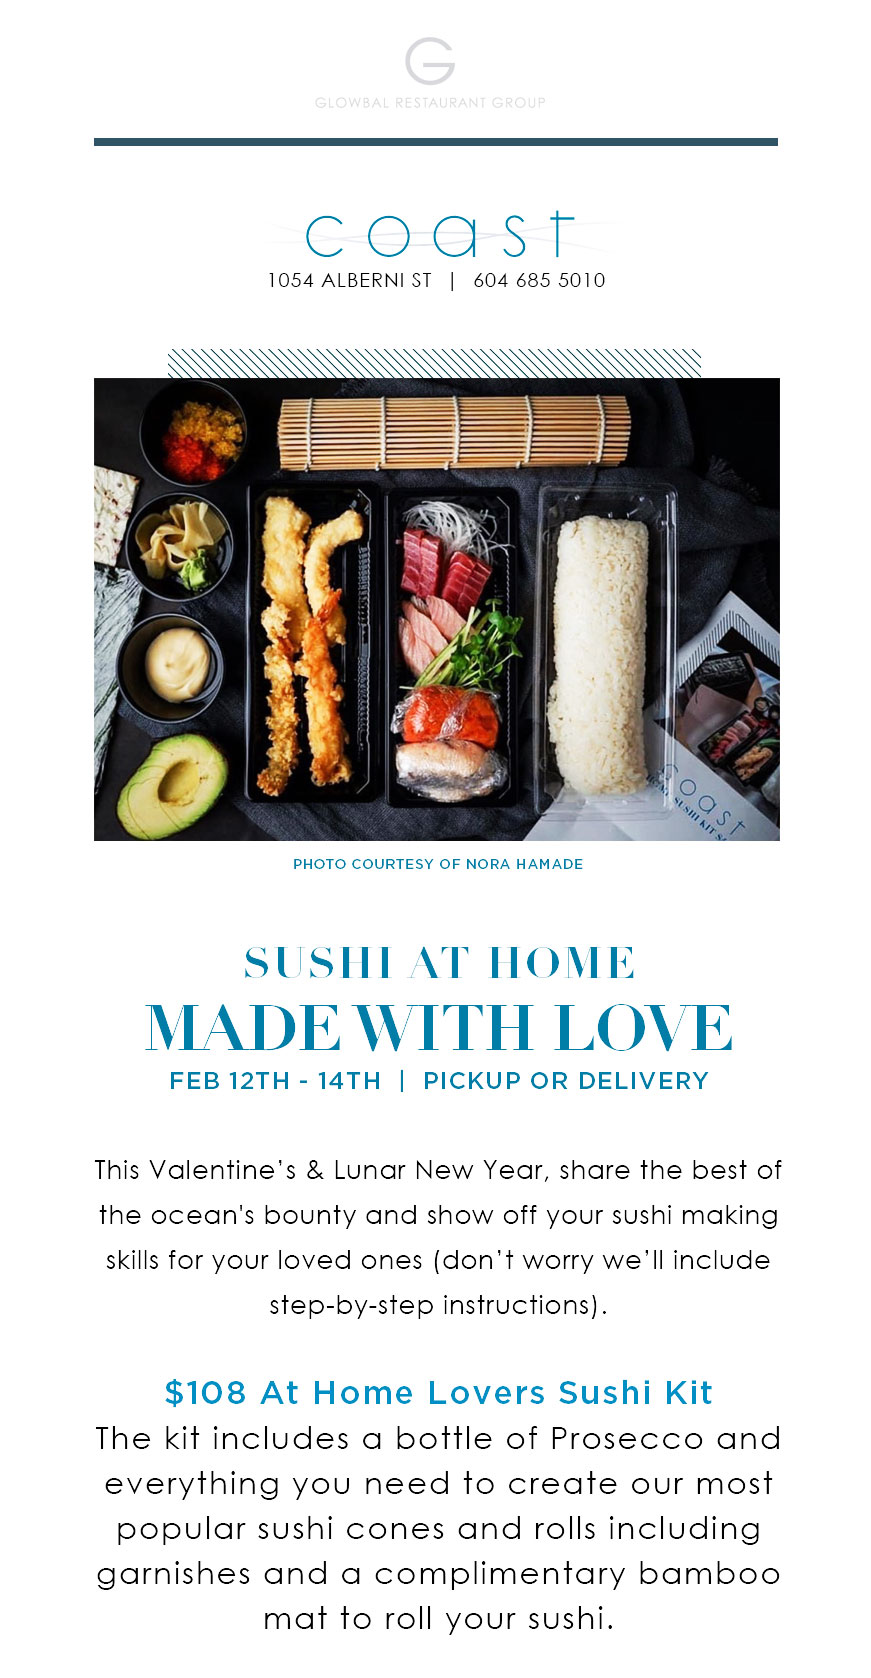 This Valentine's & Lunar New Year, share the best of the ocean's bounty and show off your sushi making skills for your loved ones (don't worry we'll include step-by-step instructions).   $108 At Home Lovers Sushi Kit The kit includes a bottle of Prosecco and everything you need to create our most popular sushi cones and rolls including garnishes and a complimentary bamboo mat to roll your sushi.  PRE ORDER PICKUP Call: 604 685 5010   ORDER DELIVERY FEB 12TH - 14TH